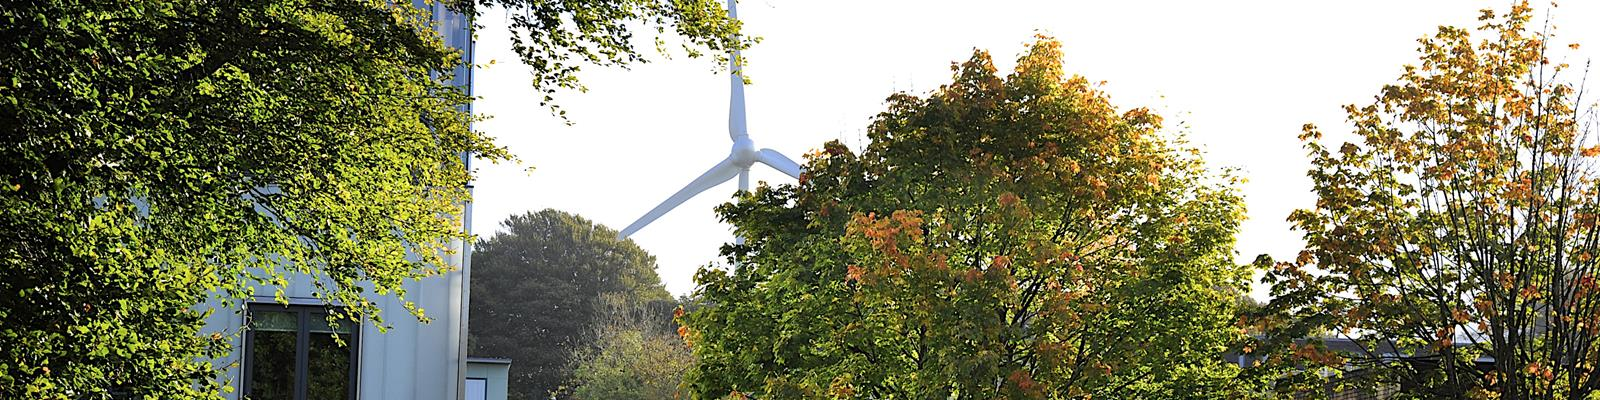 The Lancaster University wind turbine viewed through the trees on campus